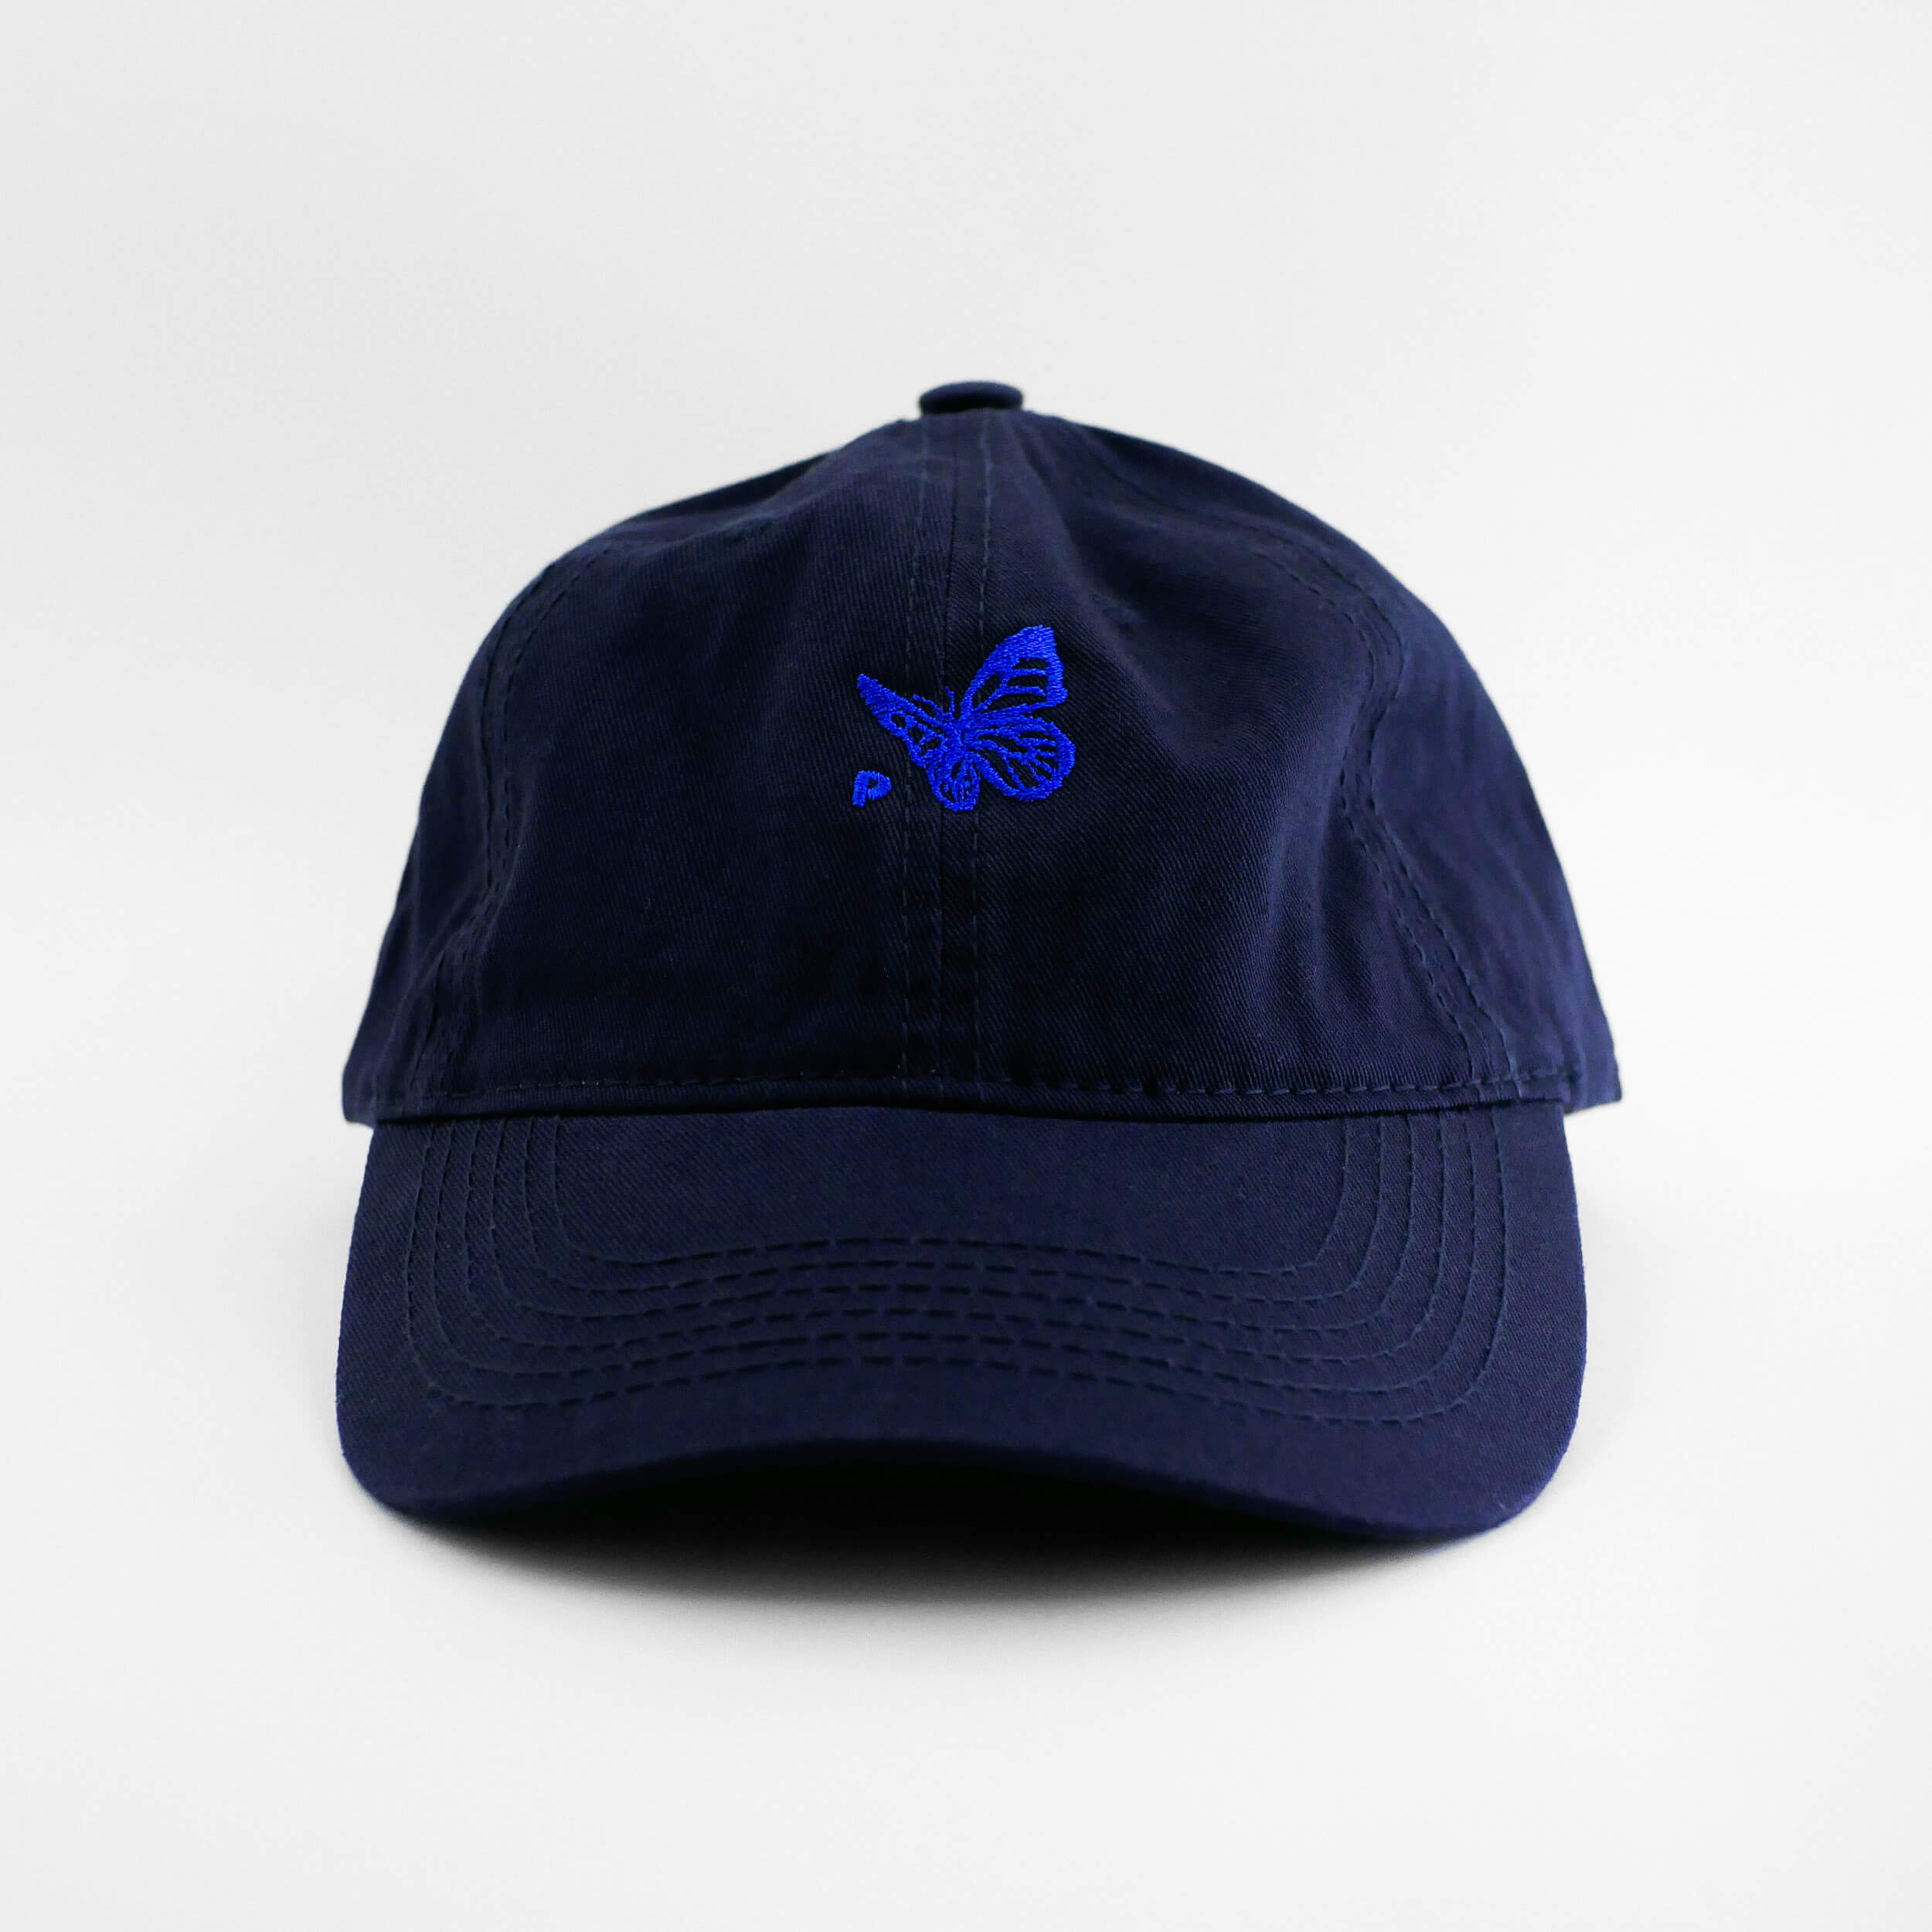 Front view of the embroidered Buttterfly Logo navy blue hat from PHOSIS Clothing